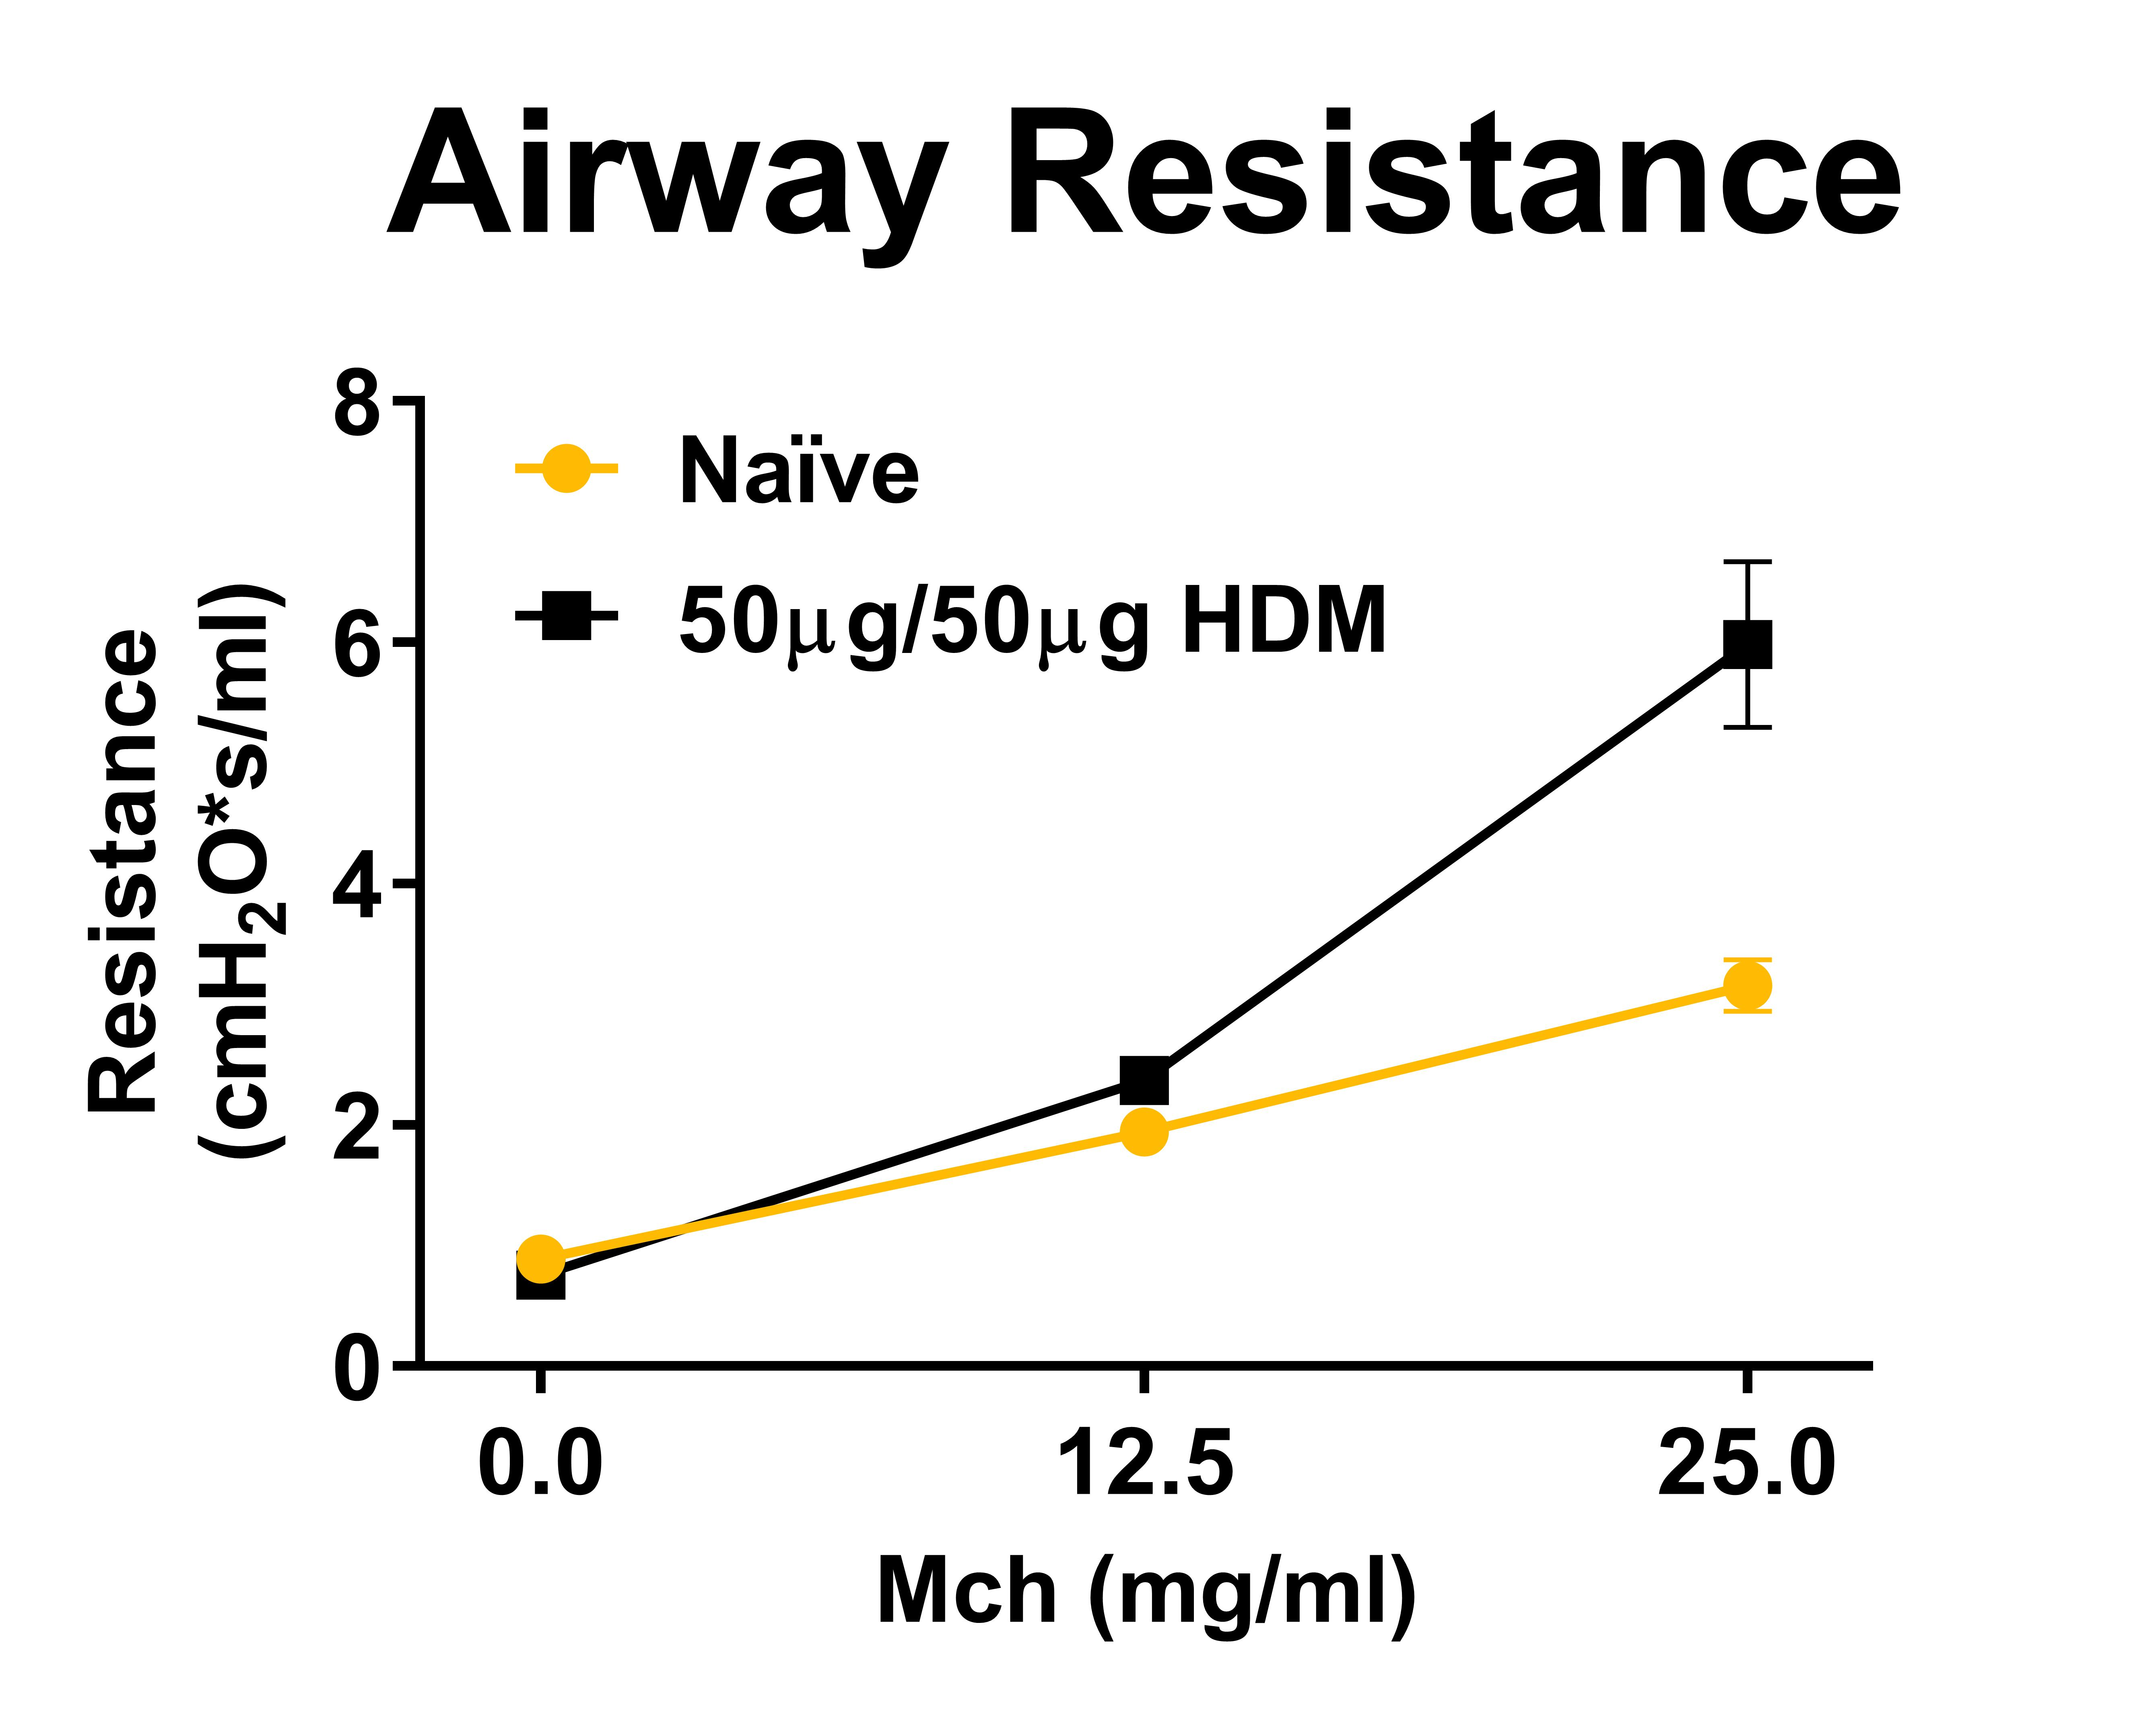 Airway Resistance increases with Methacholine challenge dose response in HDM challenged mice showing presence of hyperresponsive airways.